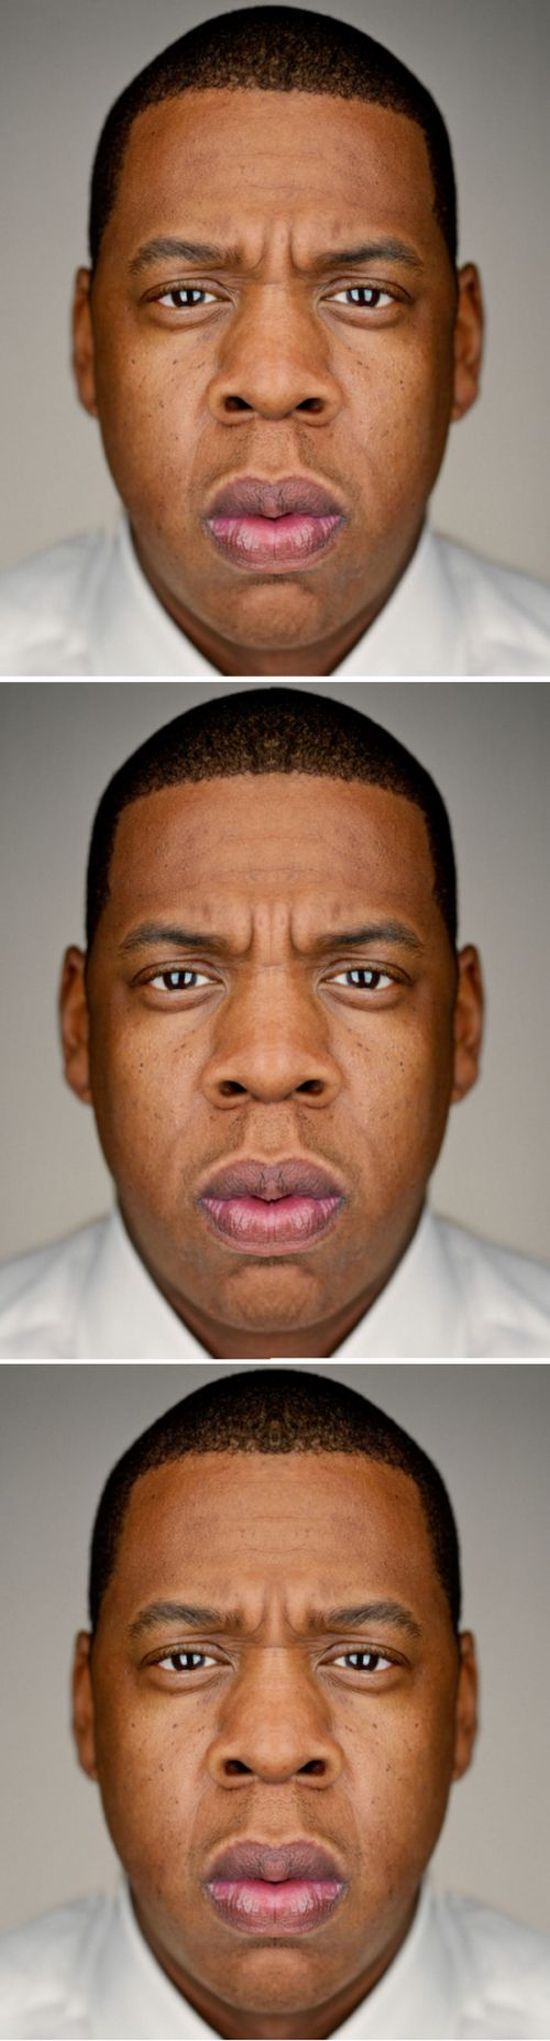 Celebs with Symmetrical Faces Are Just Weird to Look At